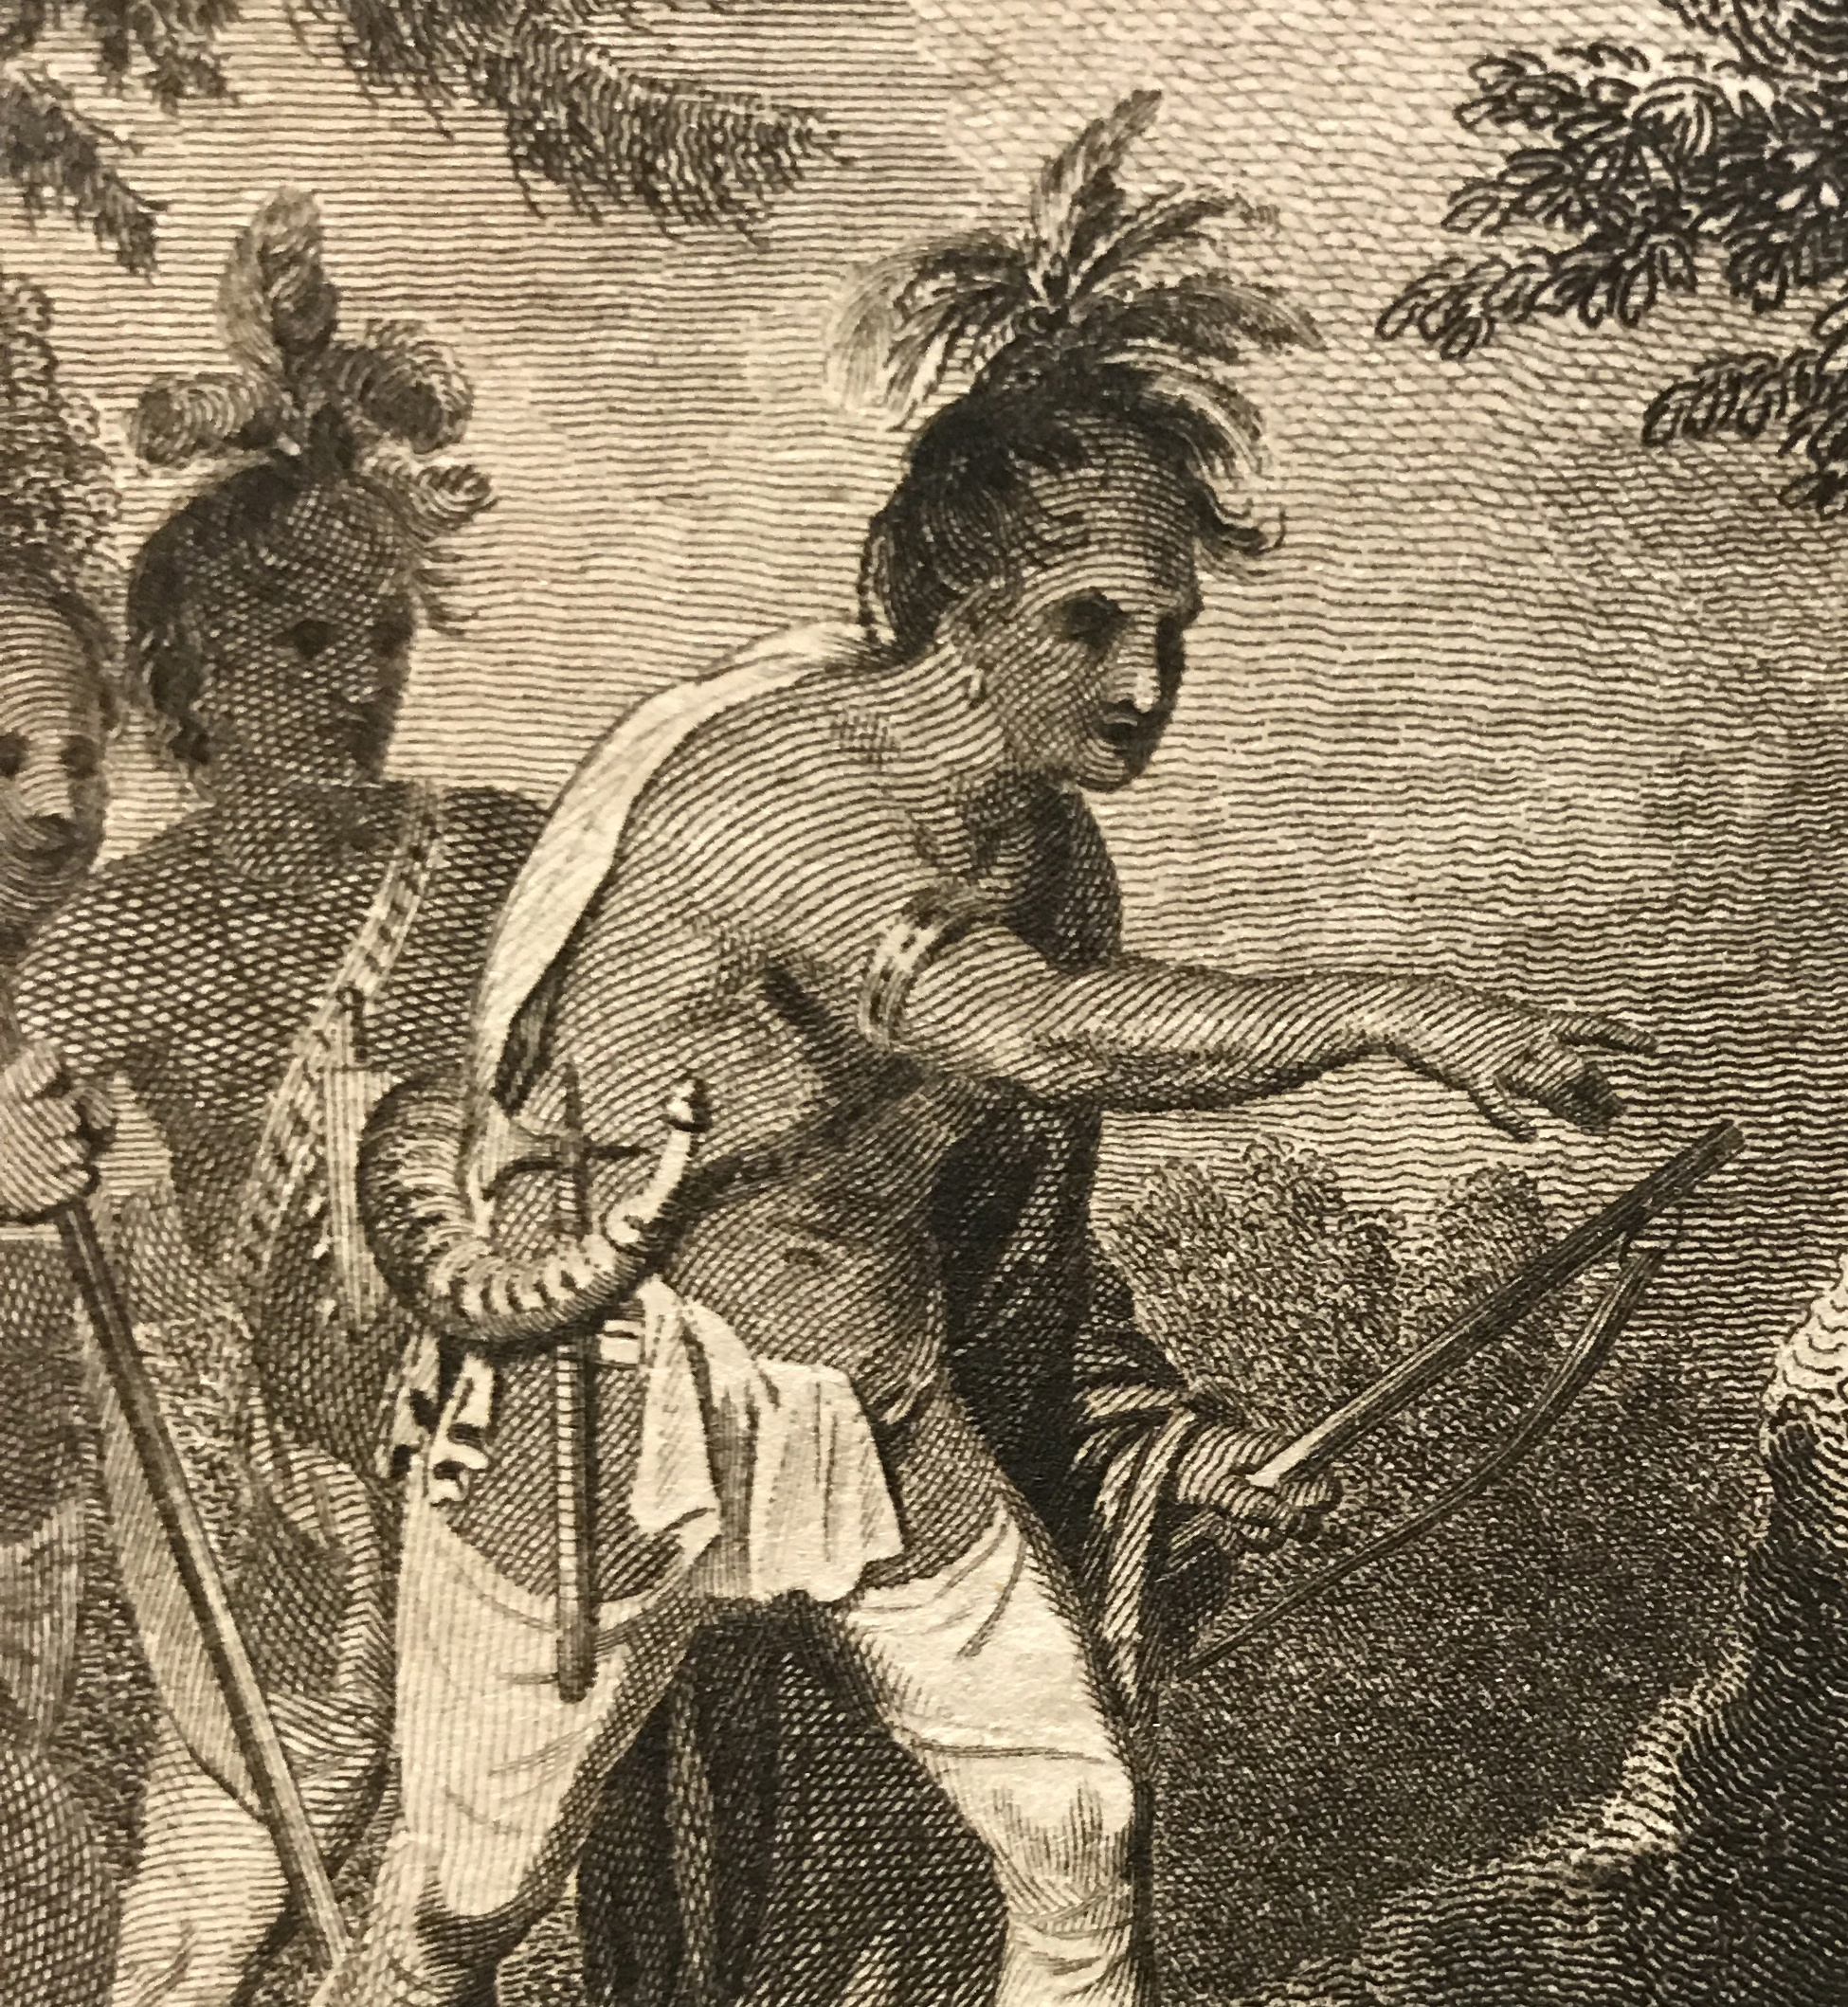 Detail from an 18th-century English engraving. Private Collection.